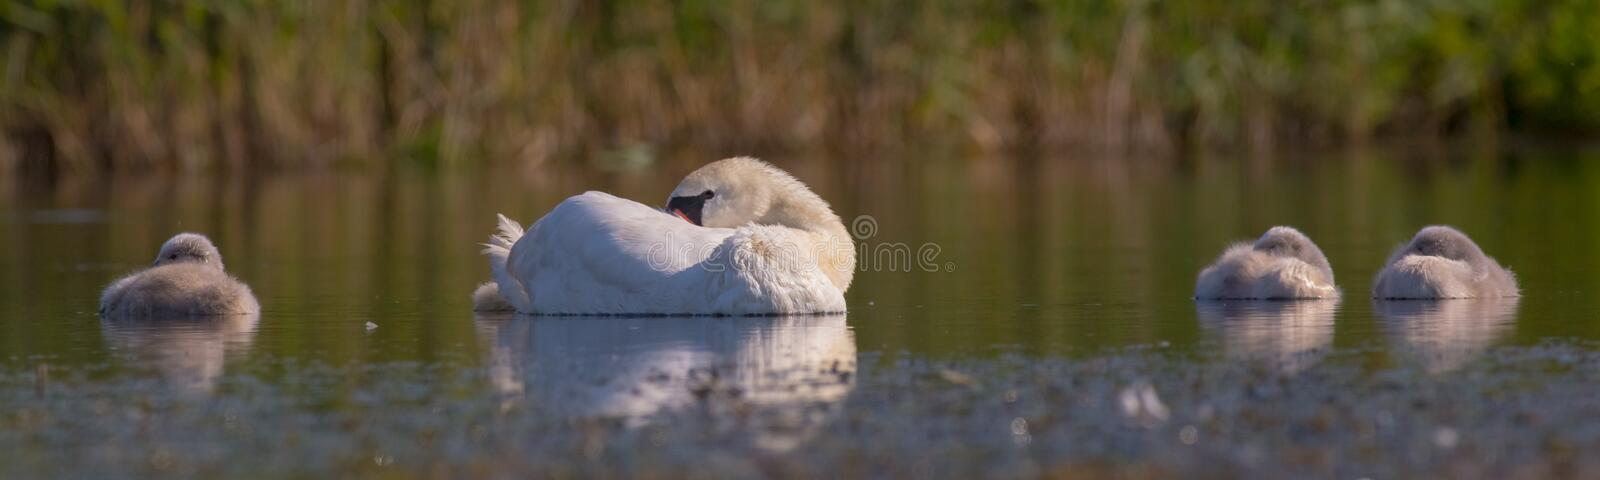 Mute swan - Cygnus olor - female with swanlets royalty free stock photos